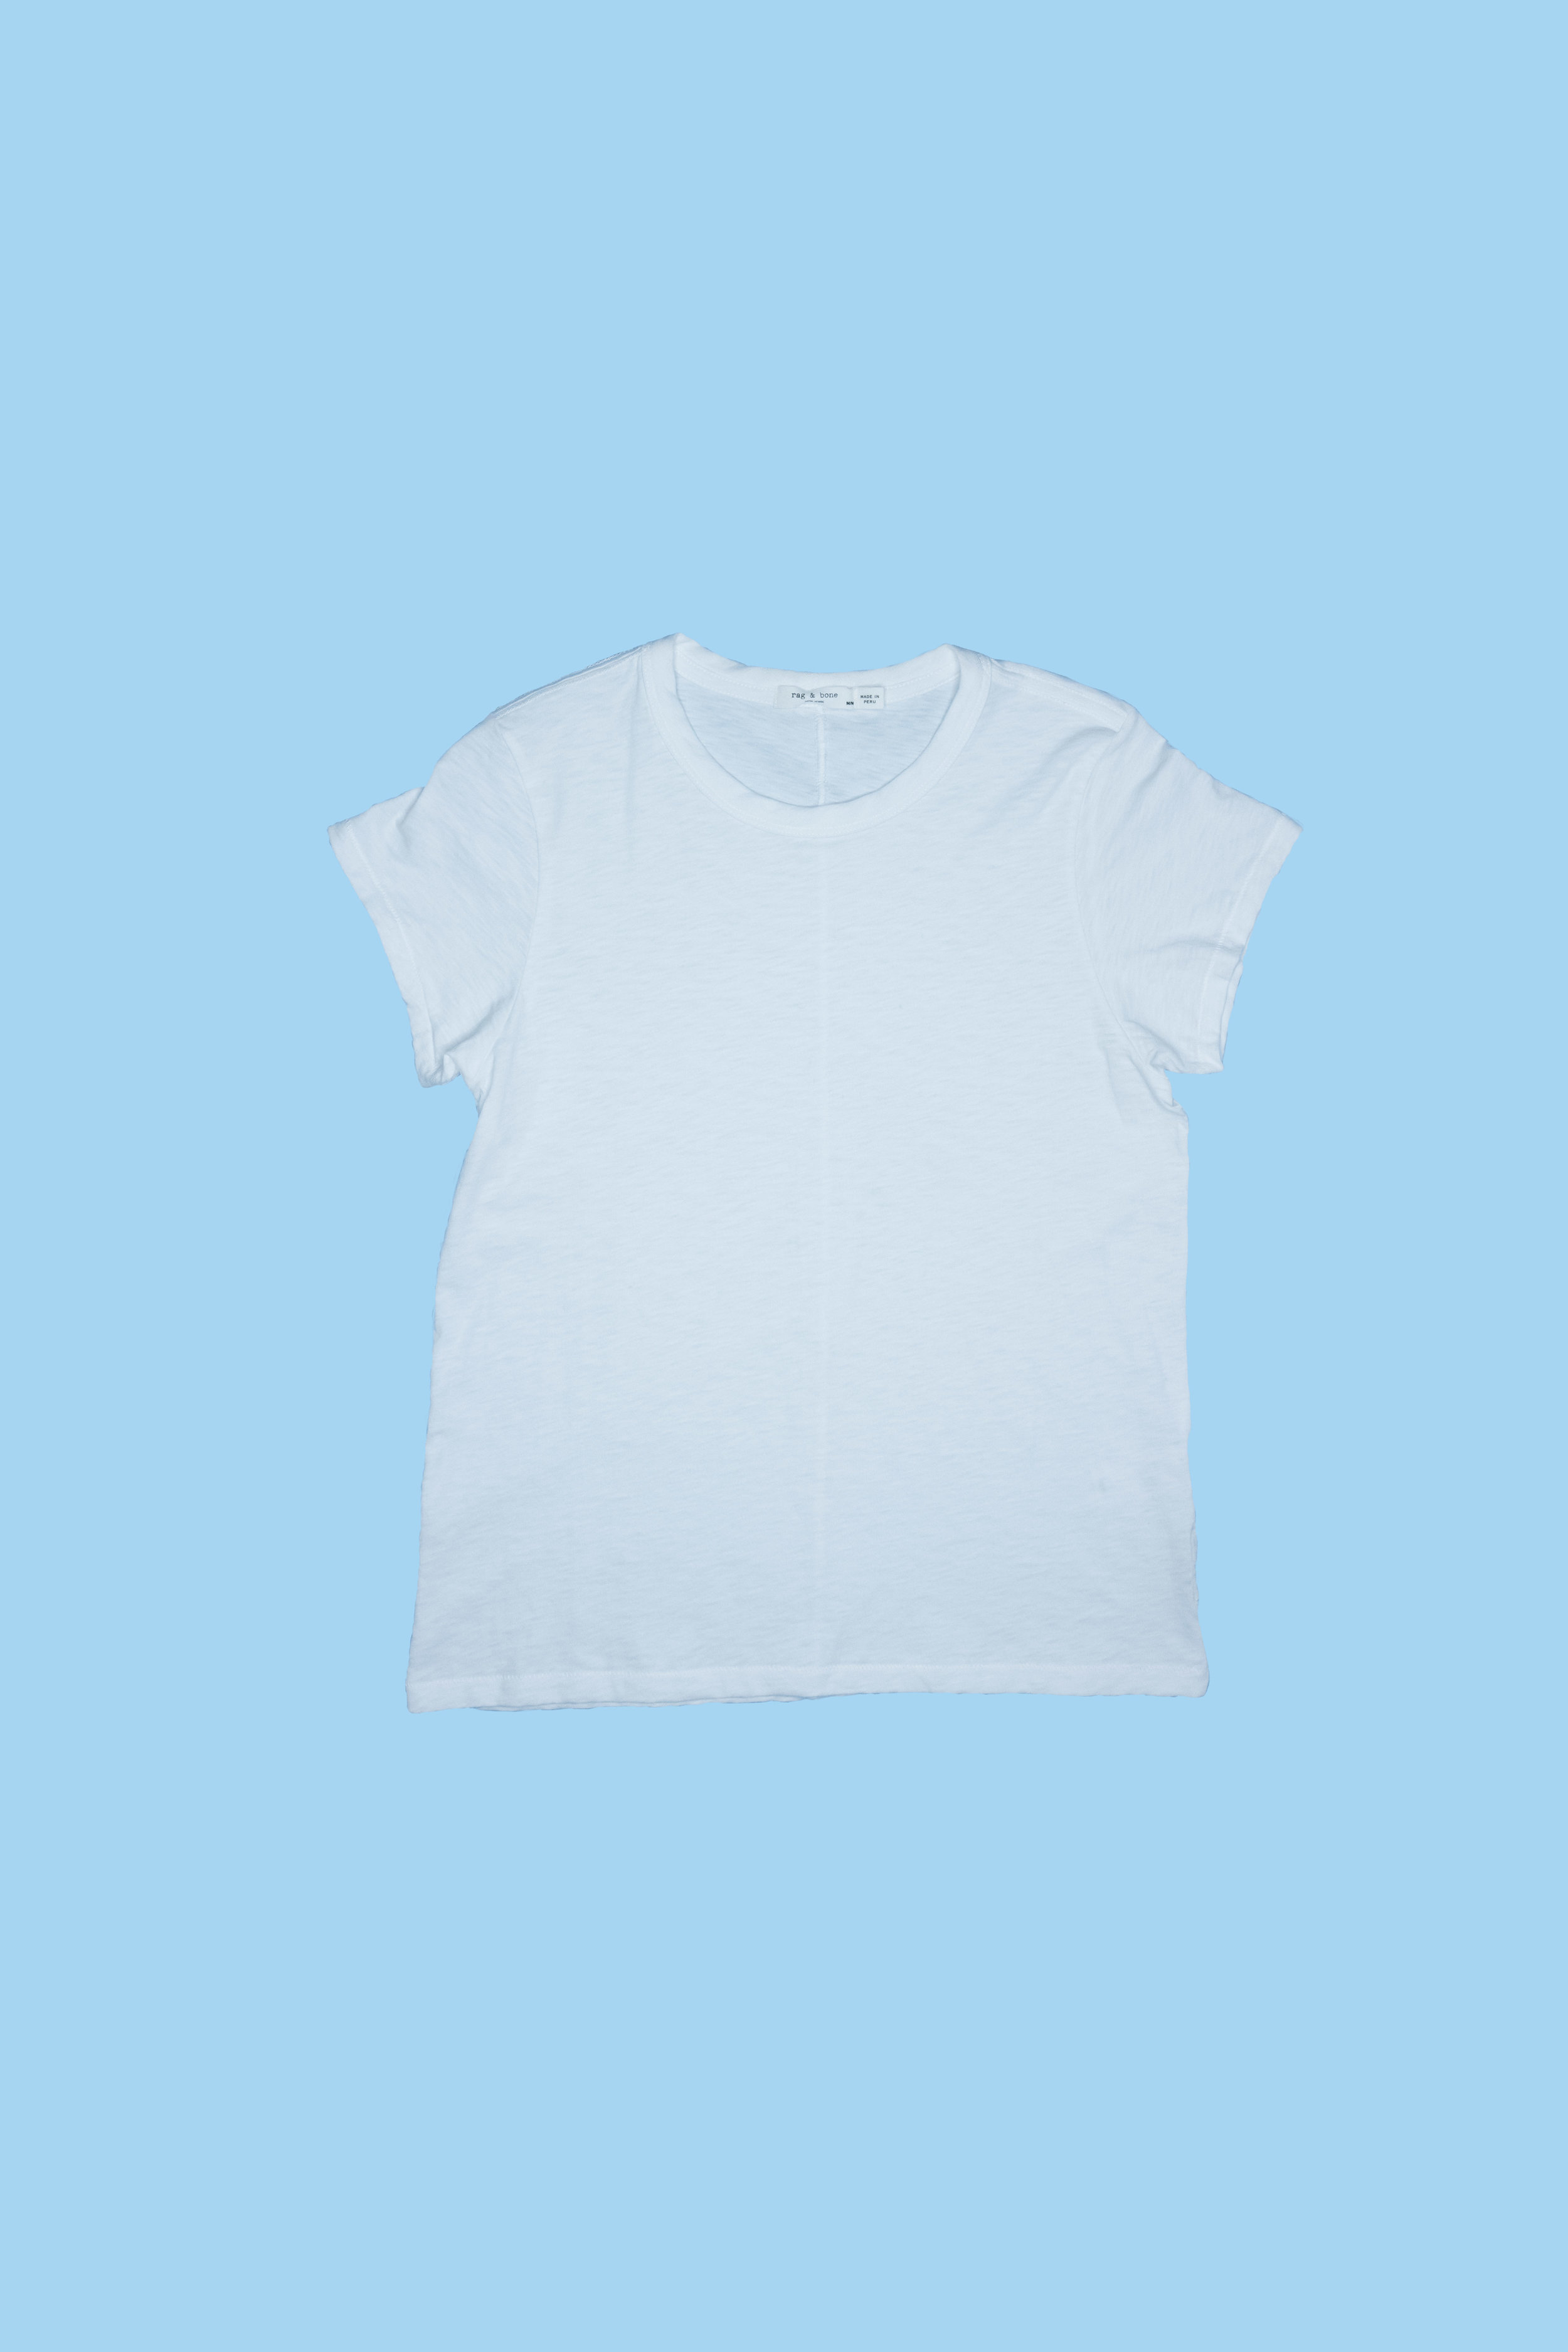 RAG-AND-BONE-WHITE-TEE.jpg